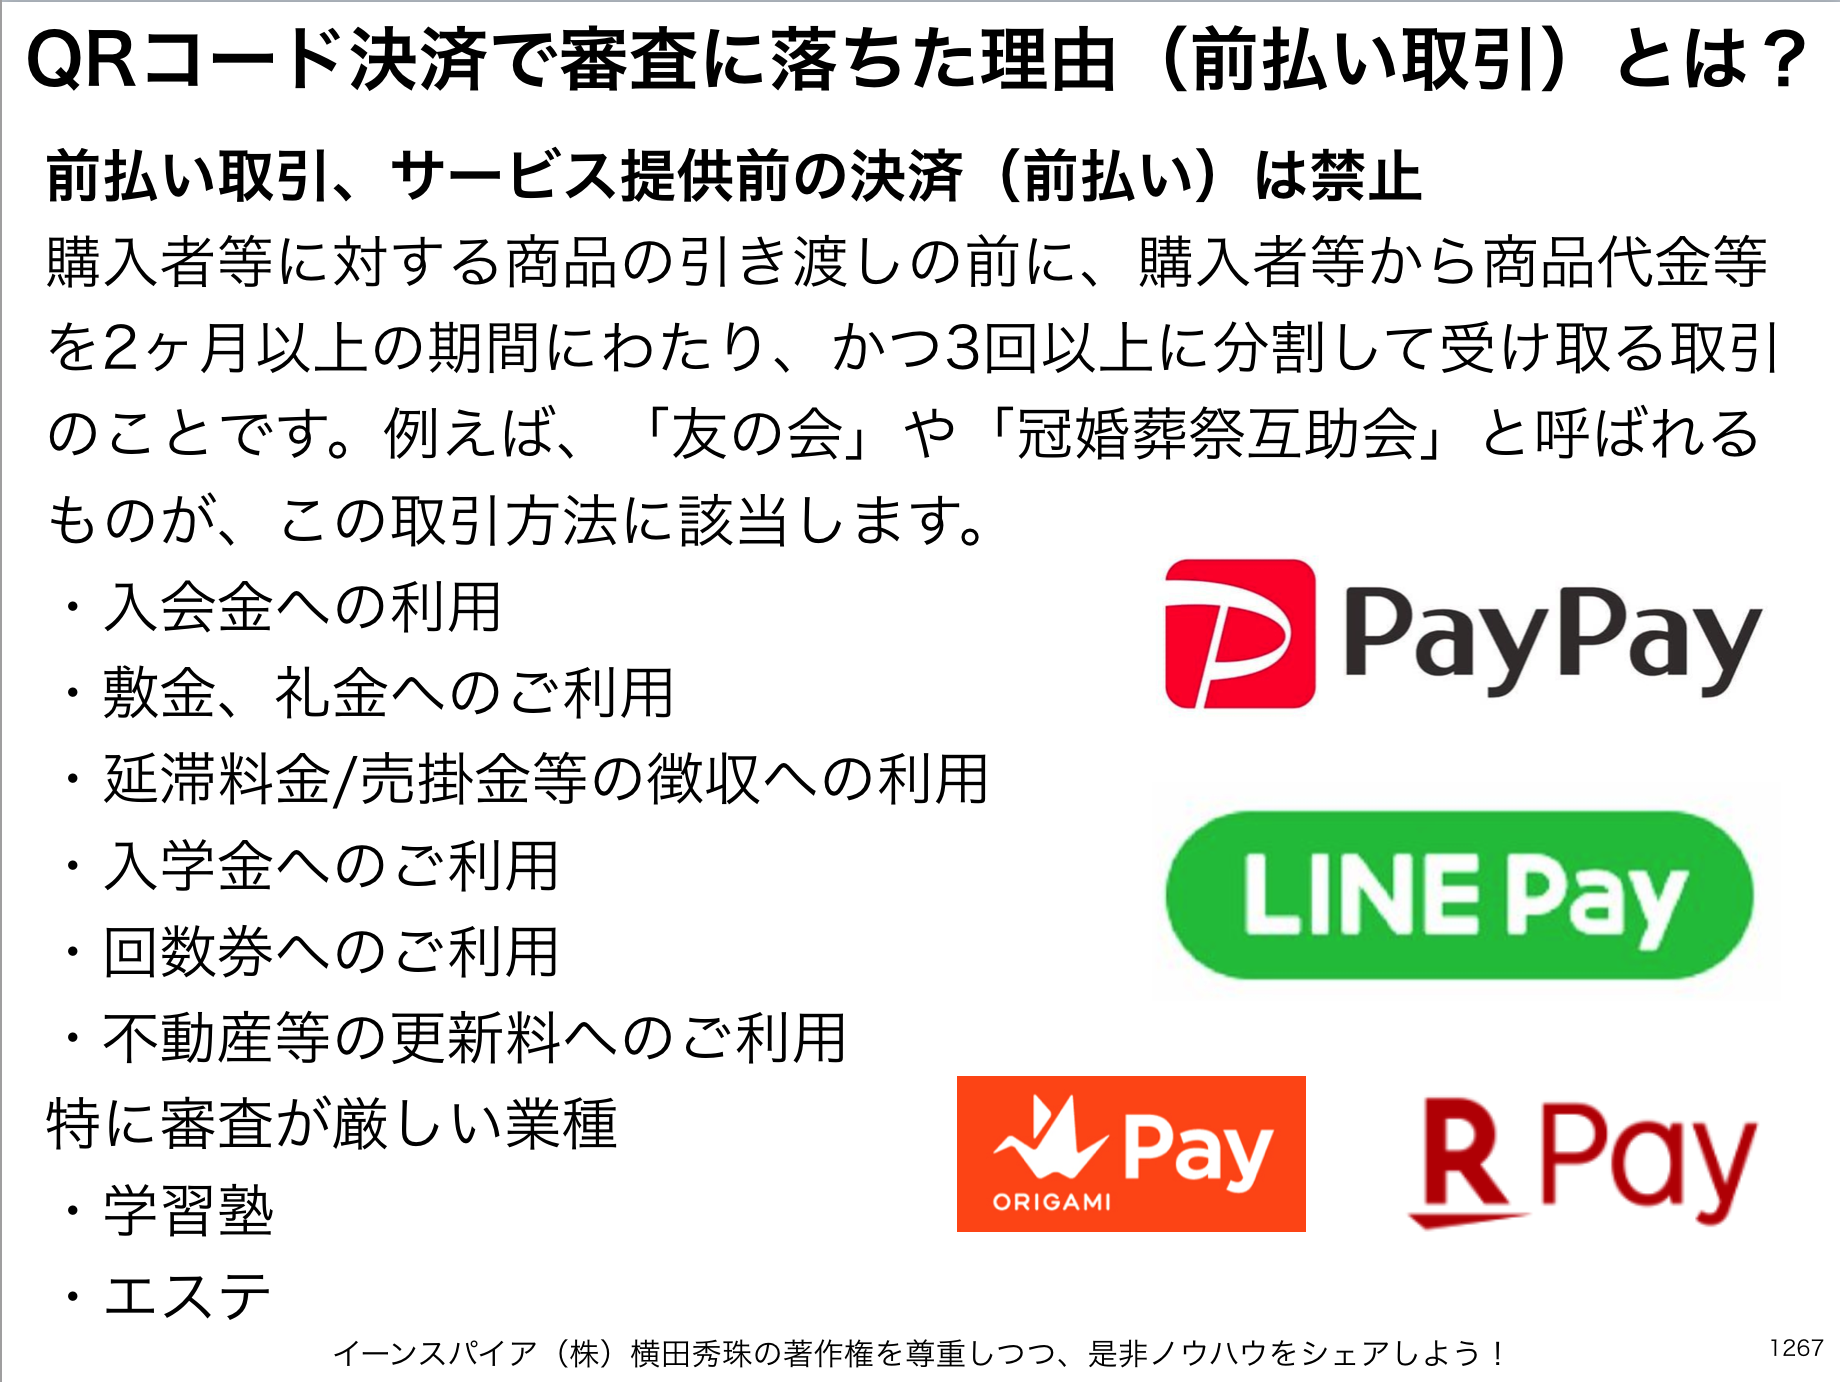 PayPay・LINE Pay・楽天Pay加盟店審査に落ちた前払い取引